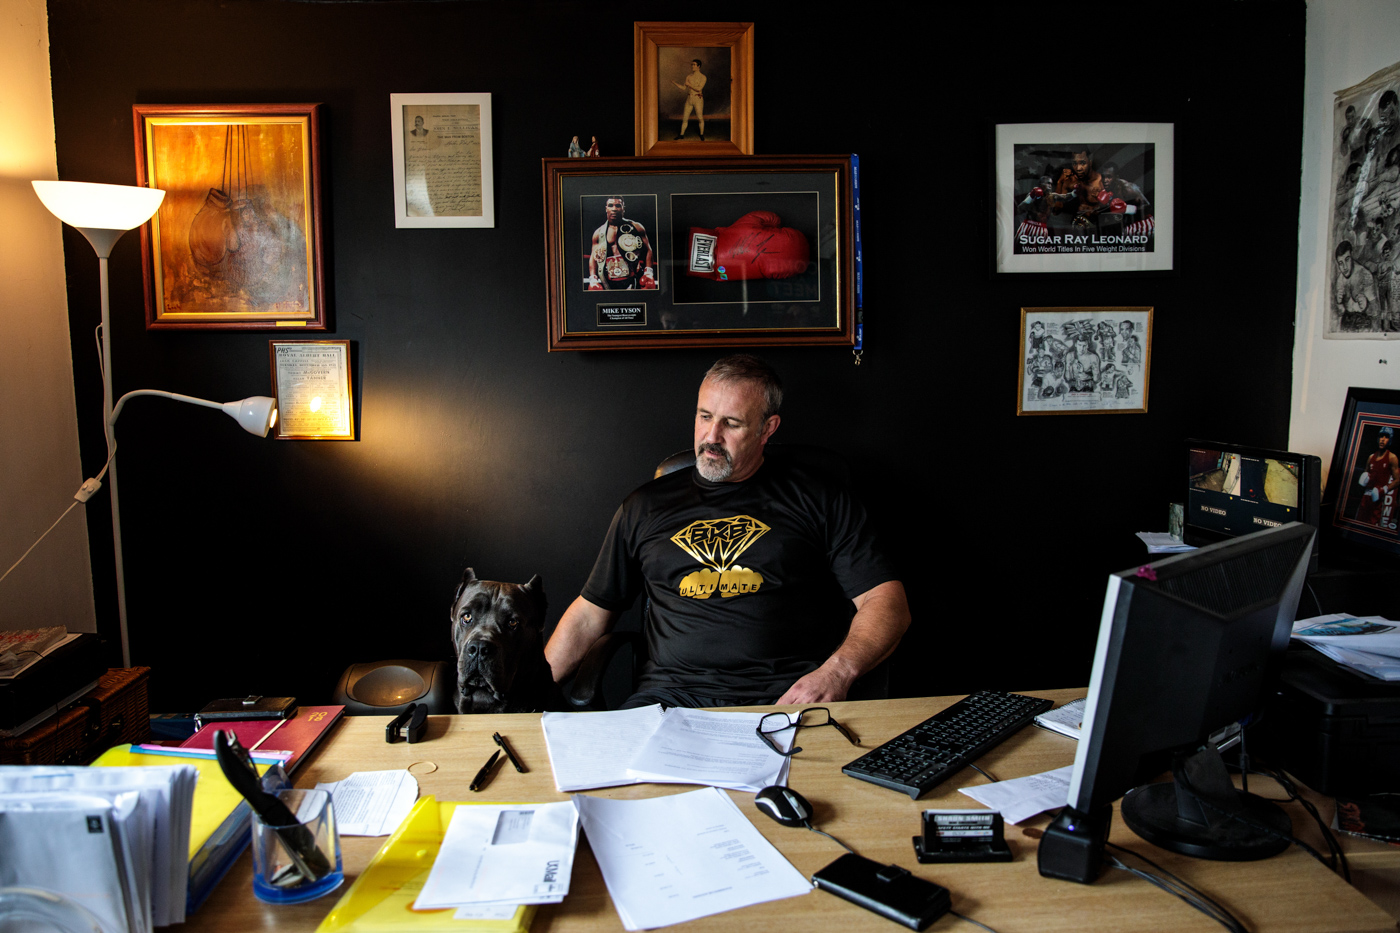 WARRINGTON, ENGLAND: Bare-knuckle boxing promoter and trainer Shaun Smith, 52, sits in his office next to his dog Drako after holding a training session at Smithys Gym on June 4, 2018 in Warrington, England.